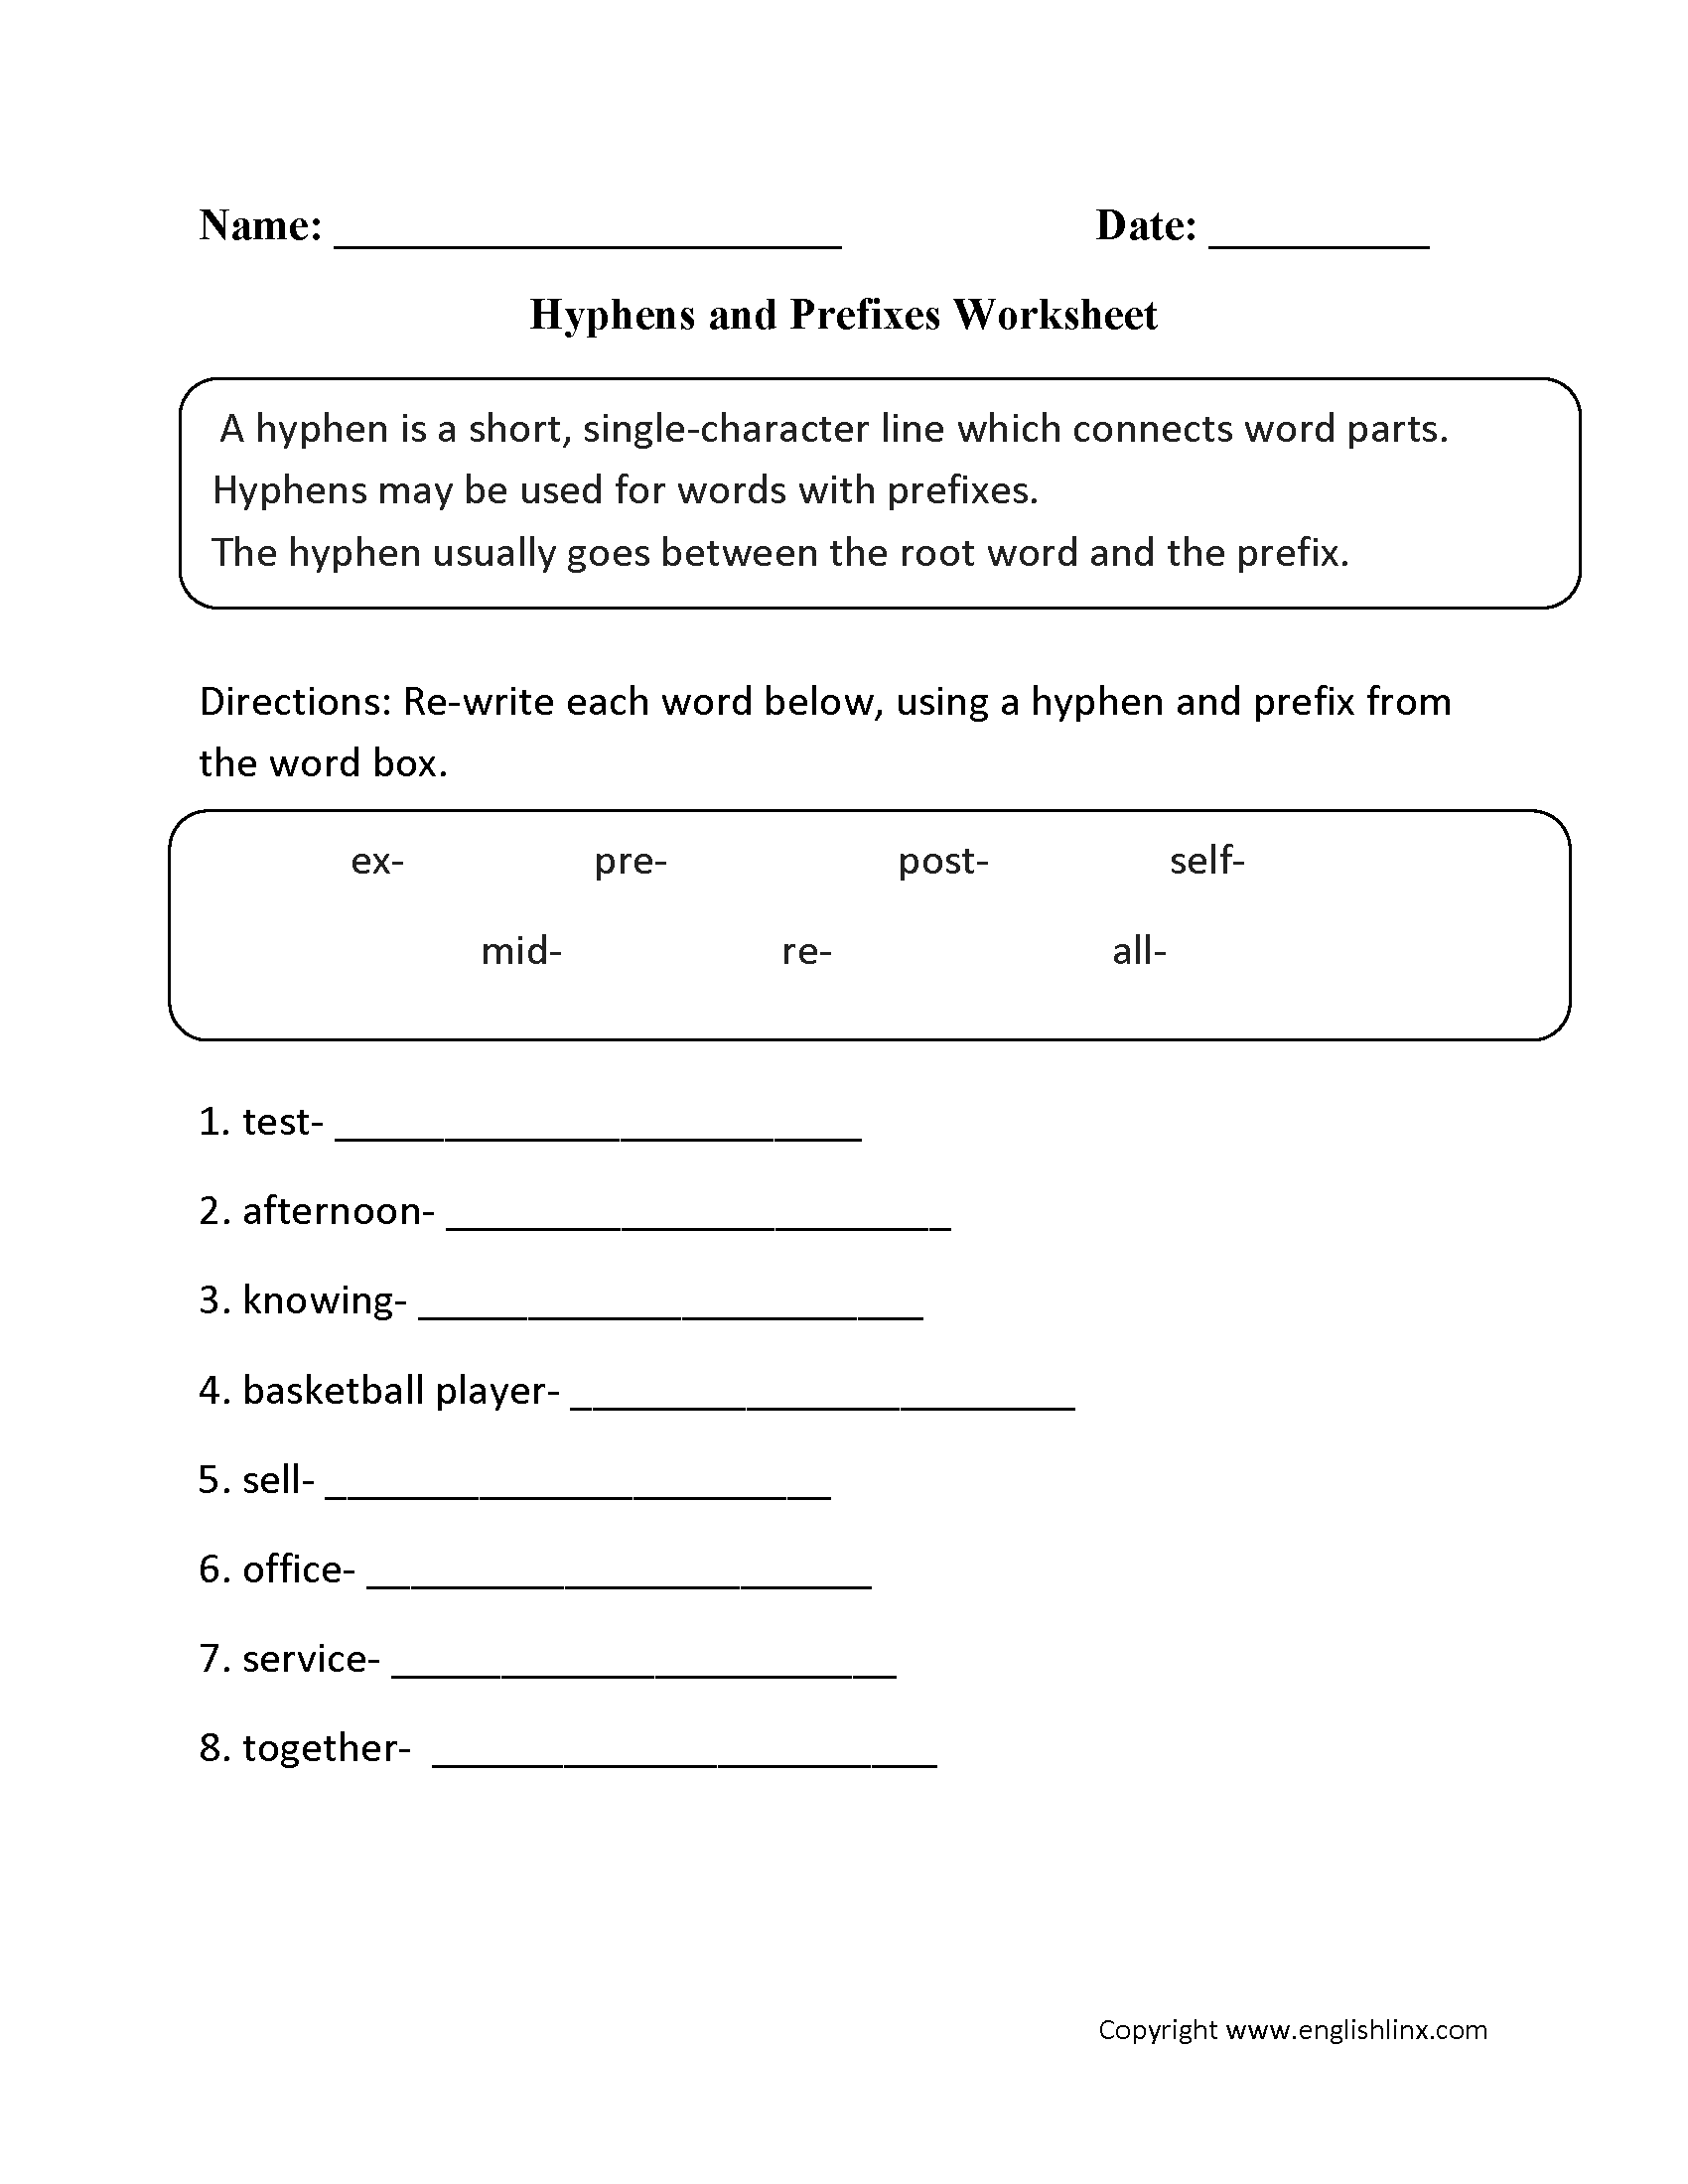 Worksheets 3rd Grade Punctuation Worksheets punctuation worksheets hyphen worksheets